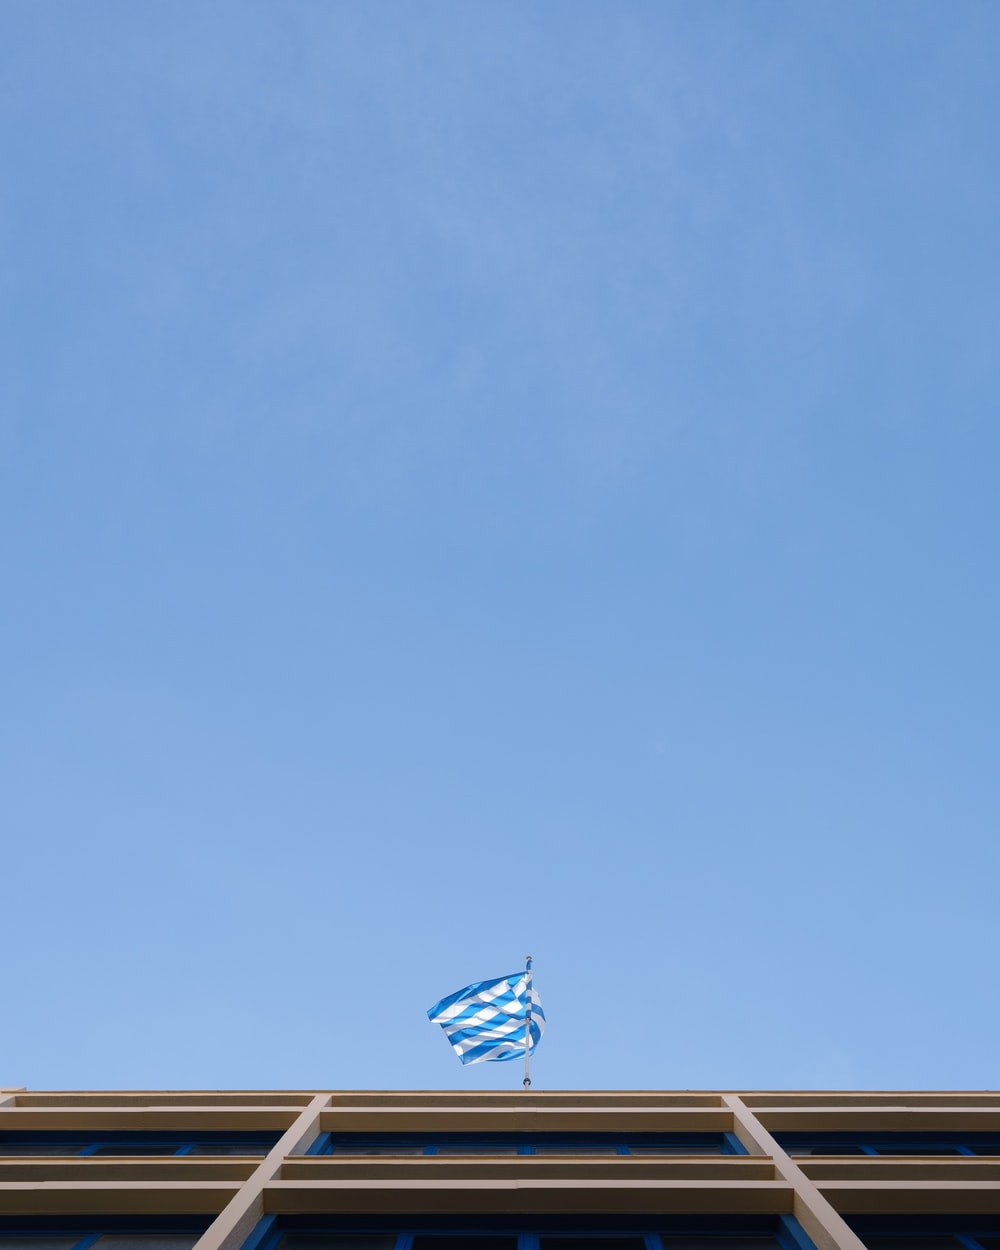 blue and white striped flag on pole under blue sky during daytime